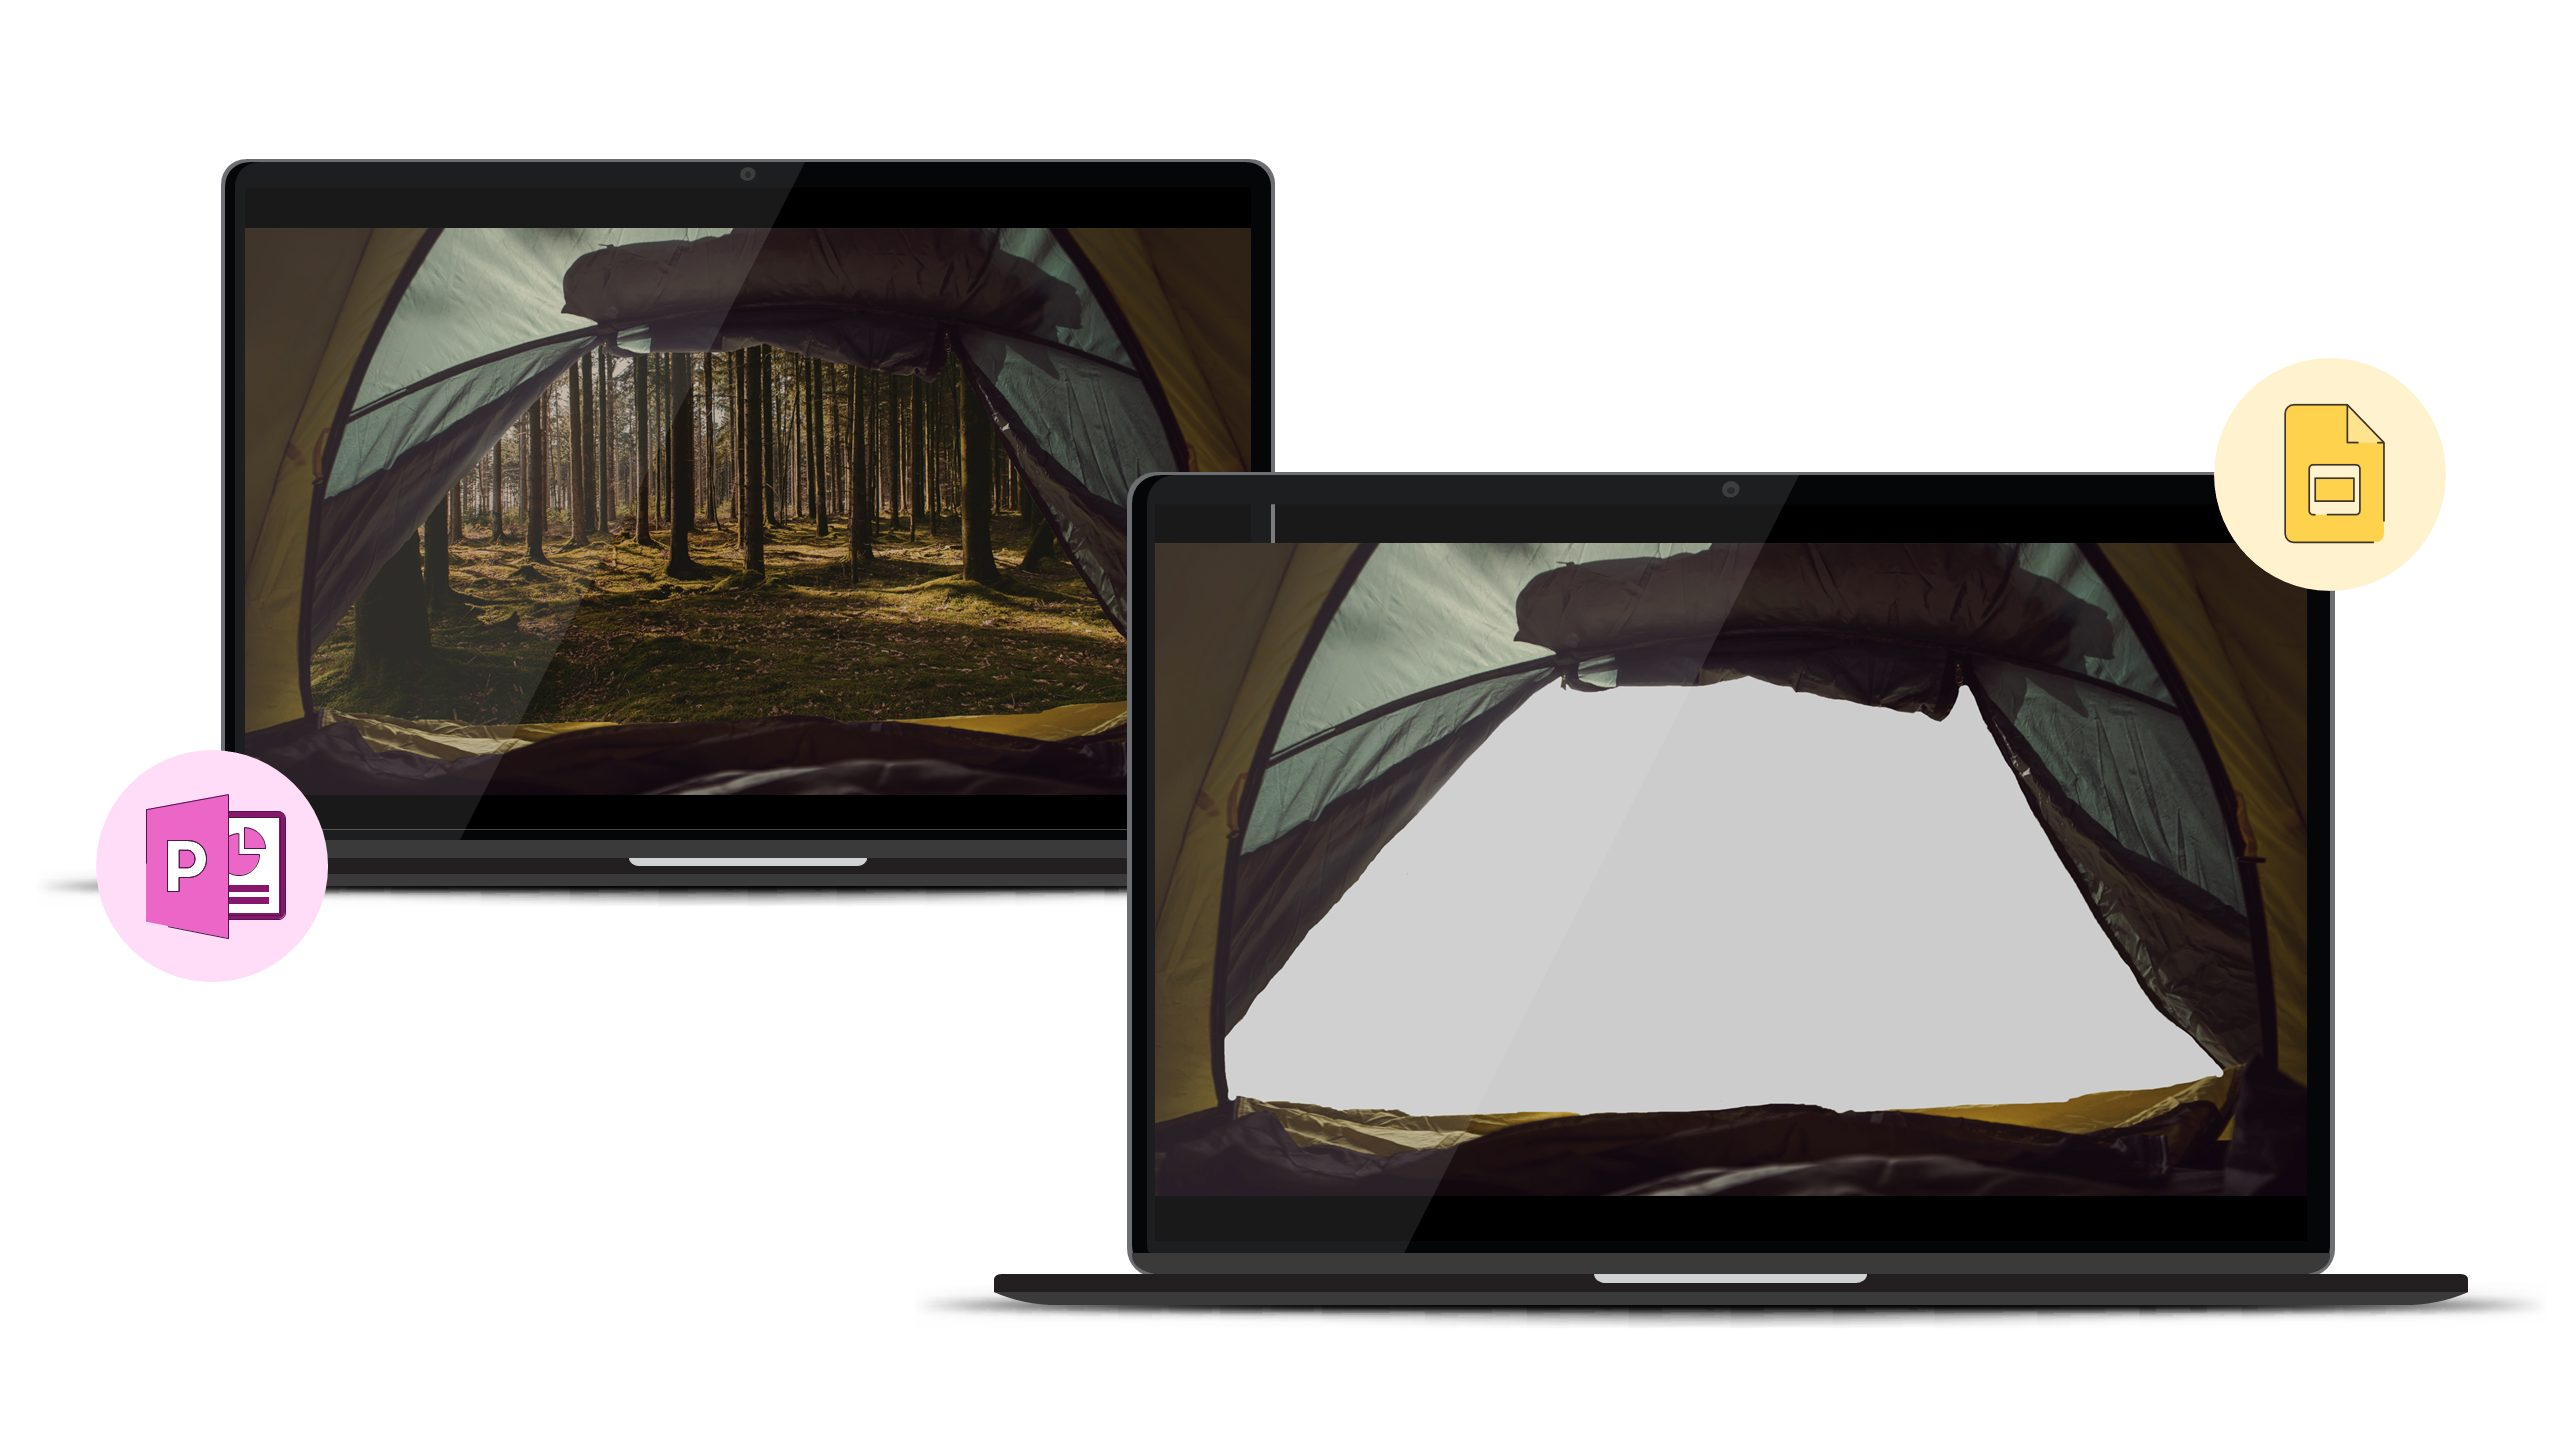 2 screenshots. The first shows a slide in PowerPoint with a composite image on. There is an image of a tent taken from the inside, the entrance has been cropped out and an image of a beautiful forest added in the gap. In the second screenshot, we can just see the image of the tent, with a blank space where the forest image should be.